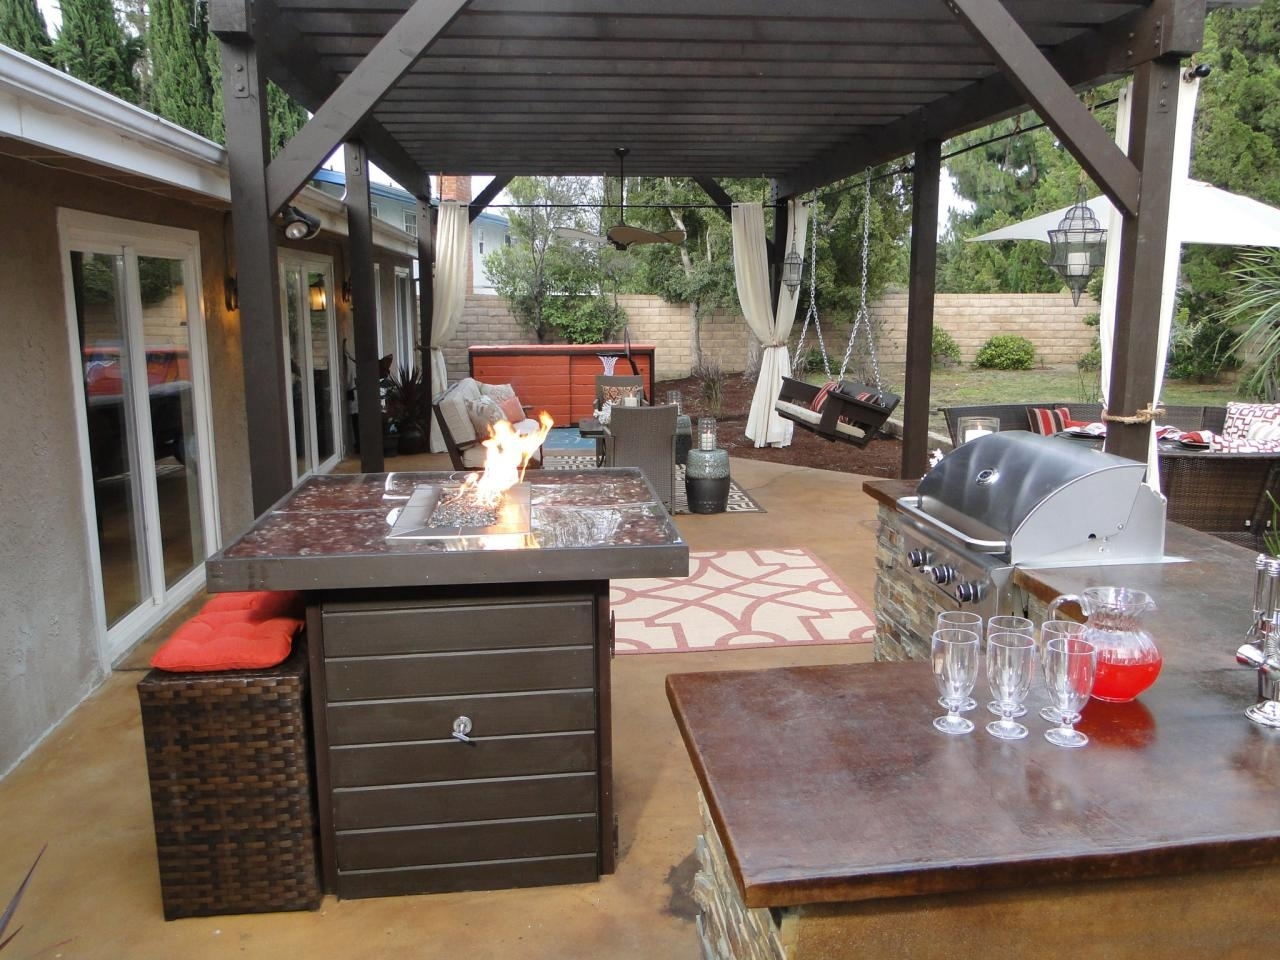 Image of: Outdoor Kitchen Countertops Pictures Ideas From Hgtv Hgtv In Outdoor Kitchen Wood Countertops Nice Outdoor Kitchen Wood Countertops Inspiration